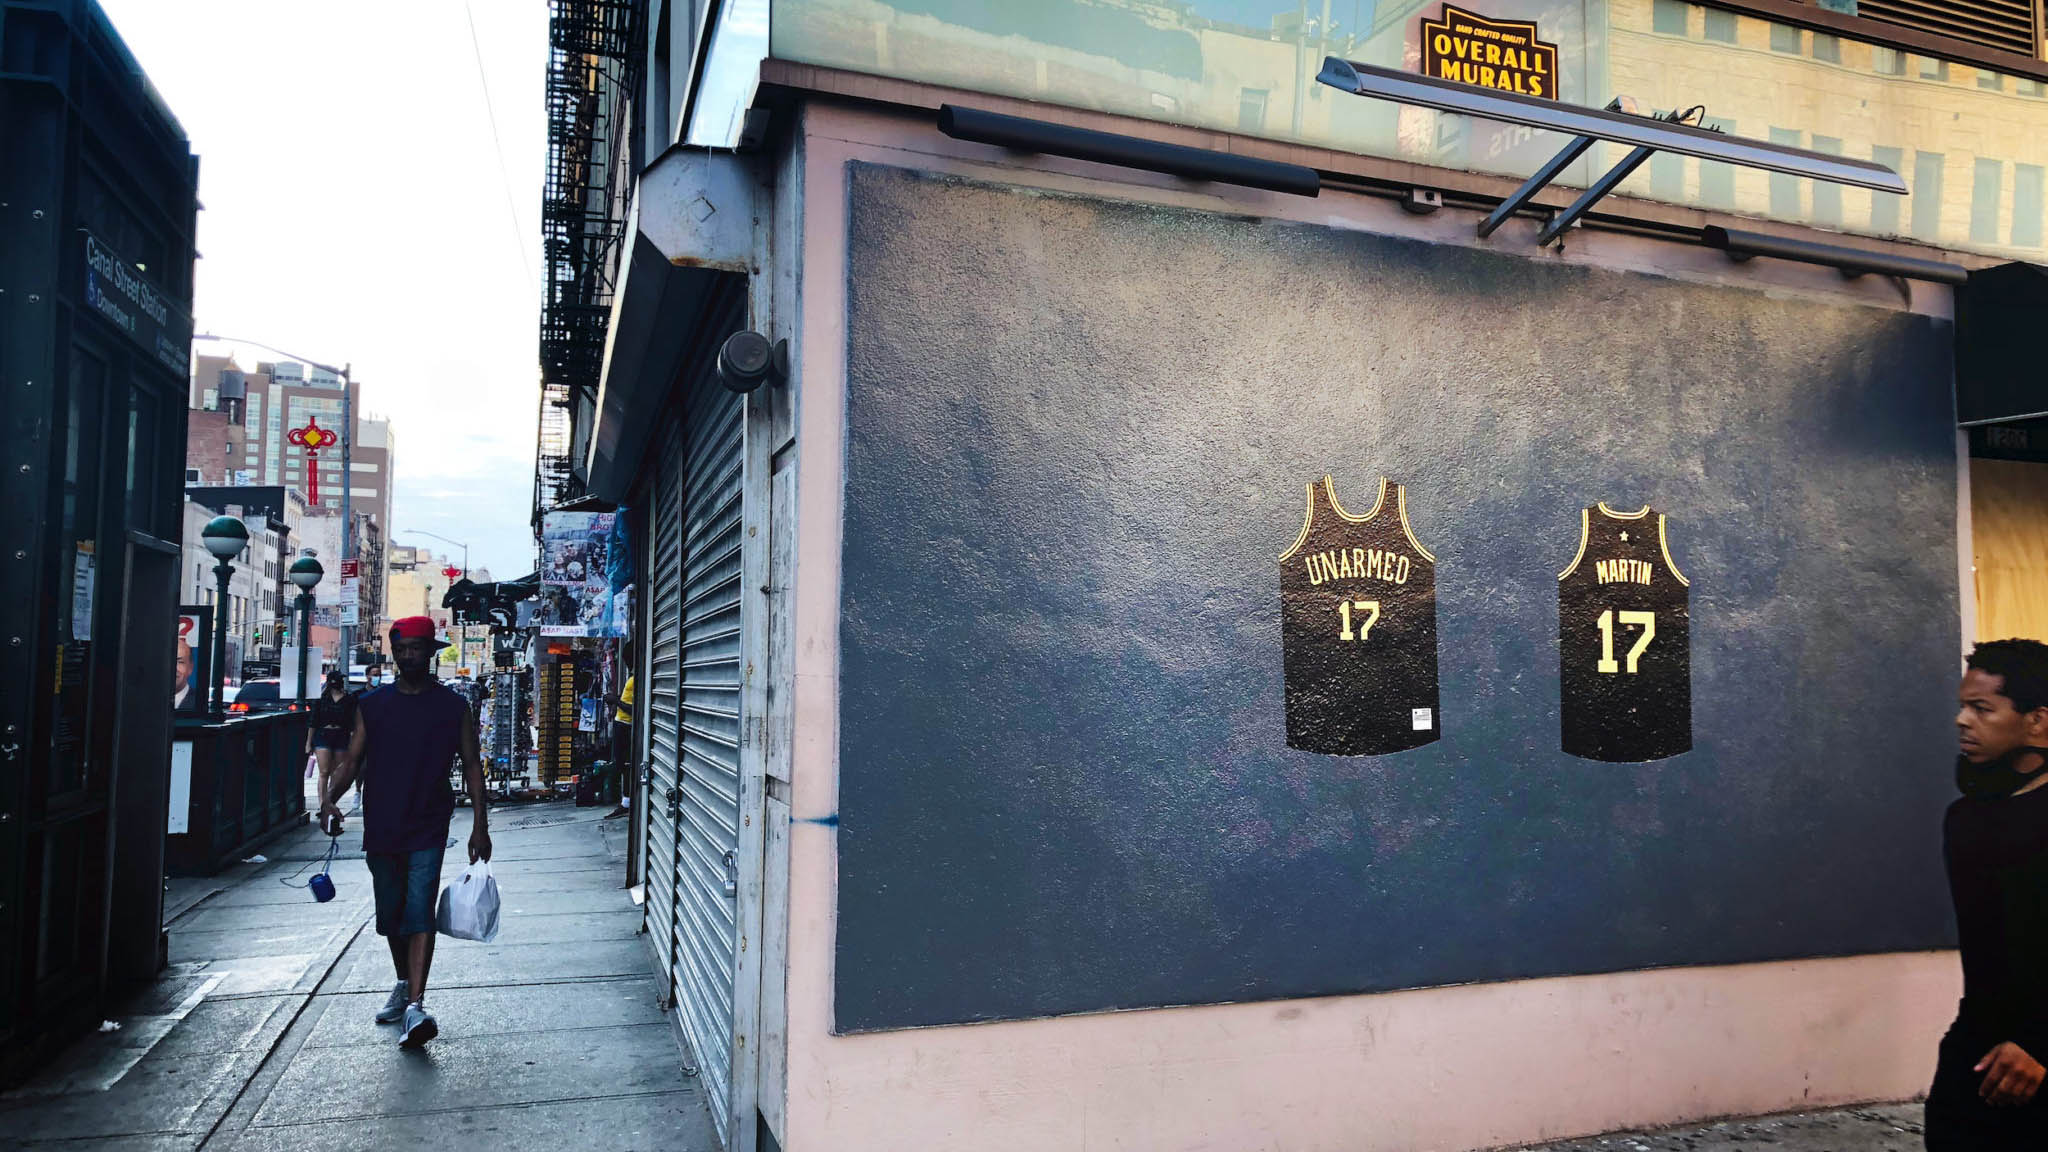 Two Black Jerseys Hanging on Wall Art Exhibit